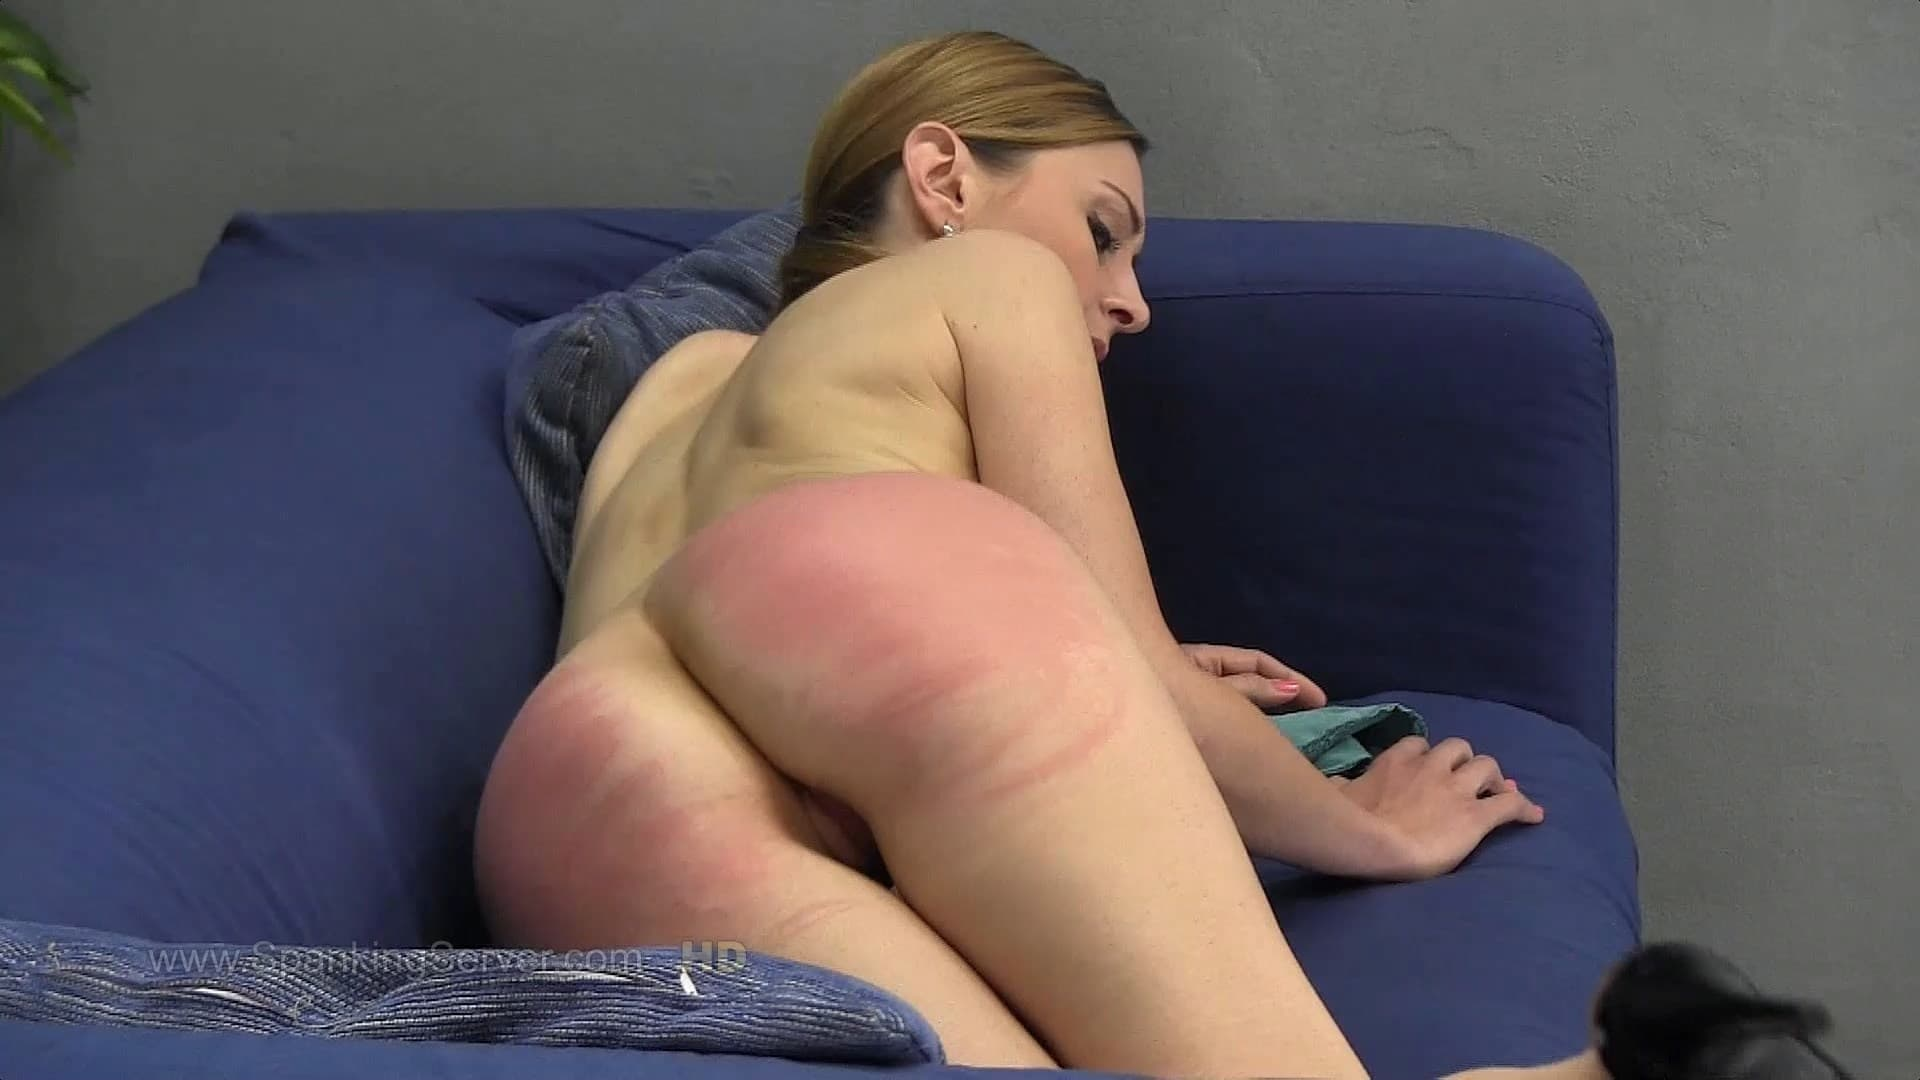 Spanking Server – MP4/Full HD – Luca Bella – 2021 – 04 Week